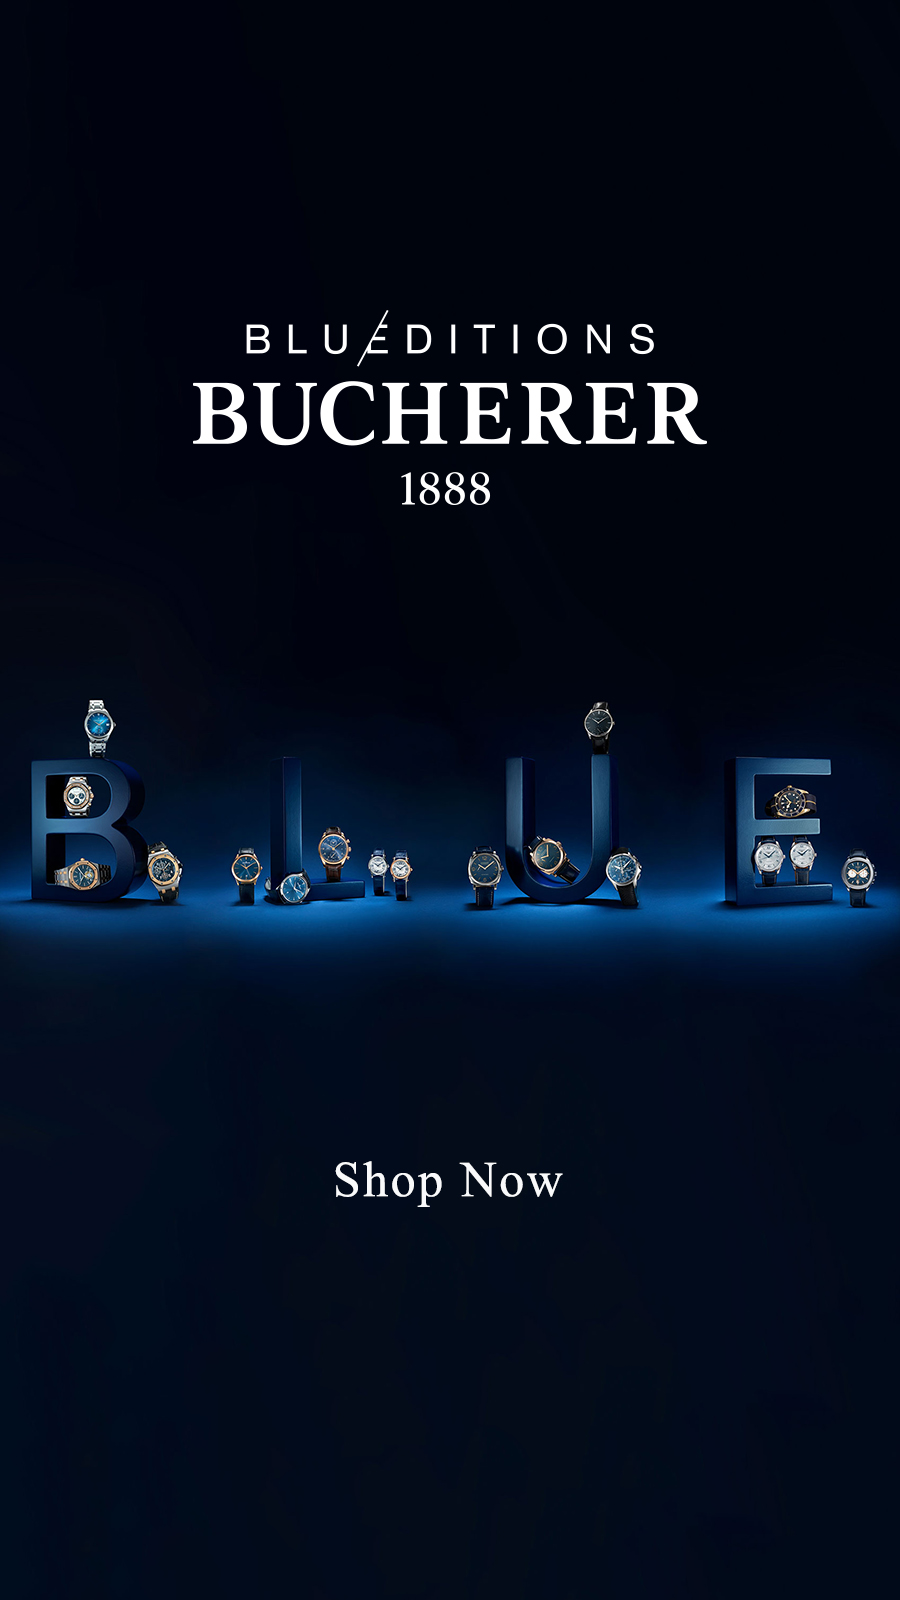 Bucherer Side Banner